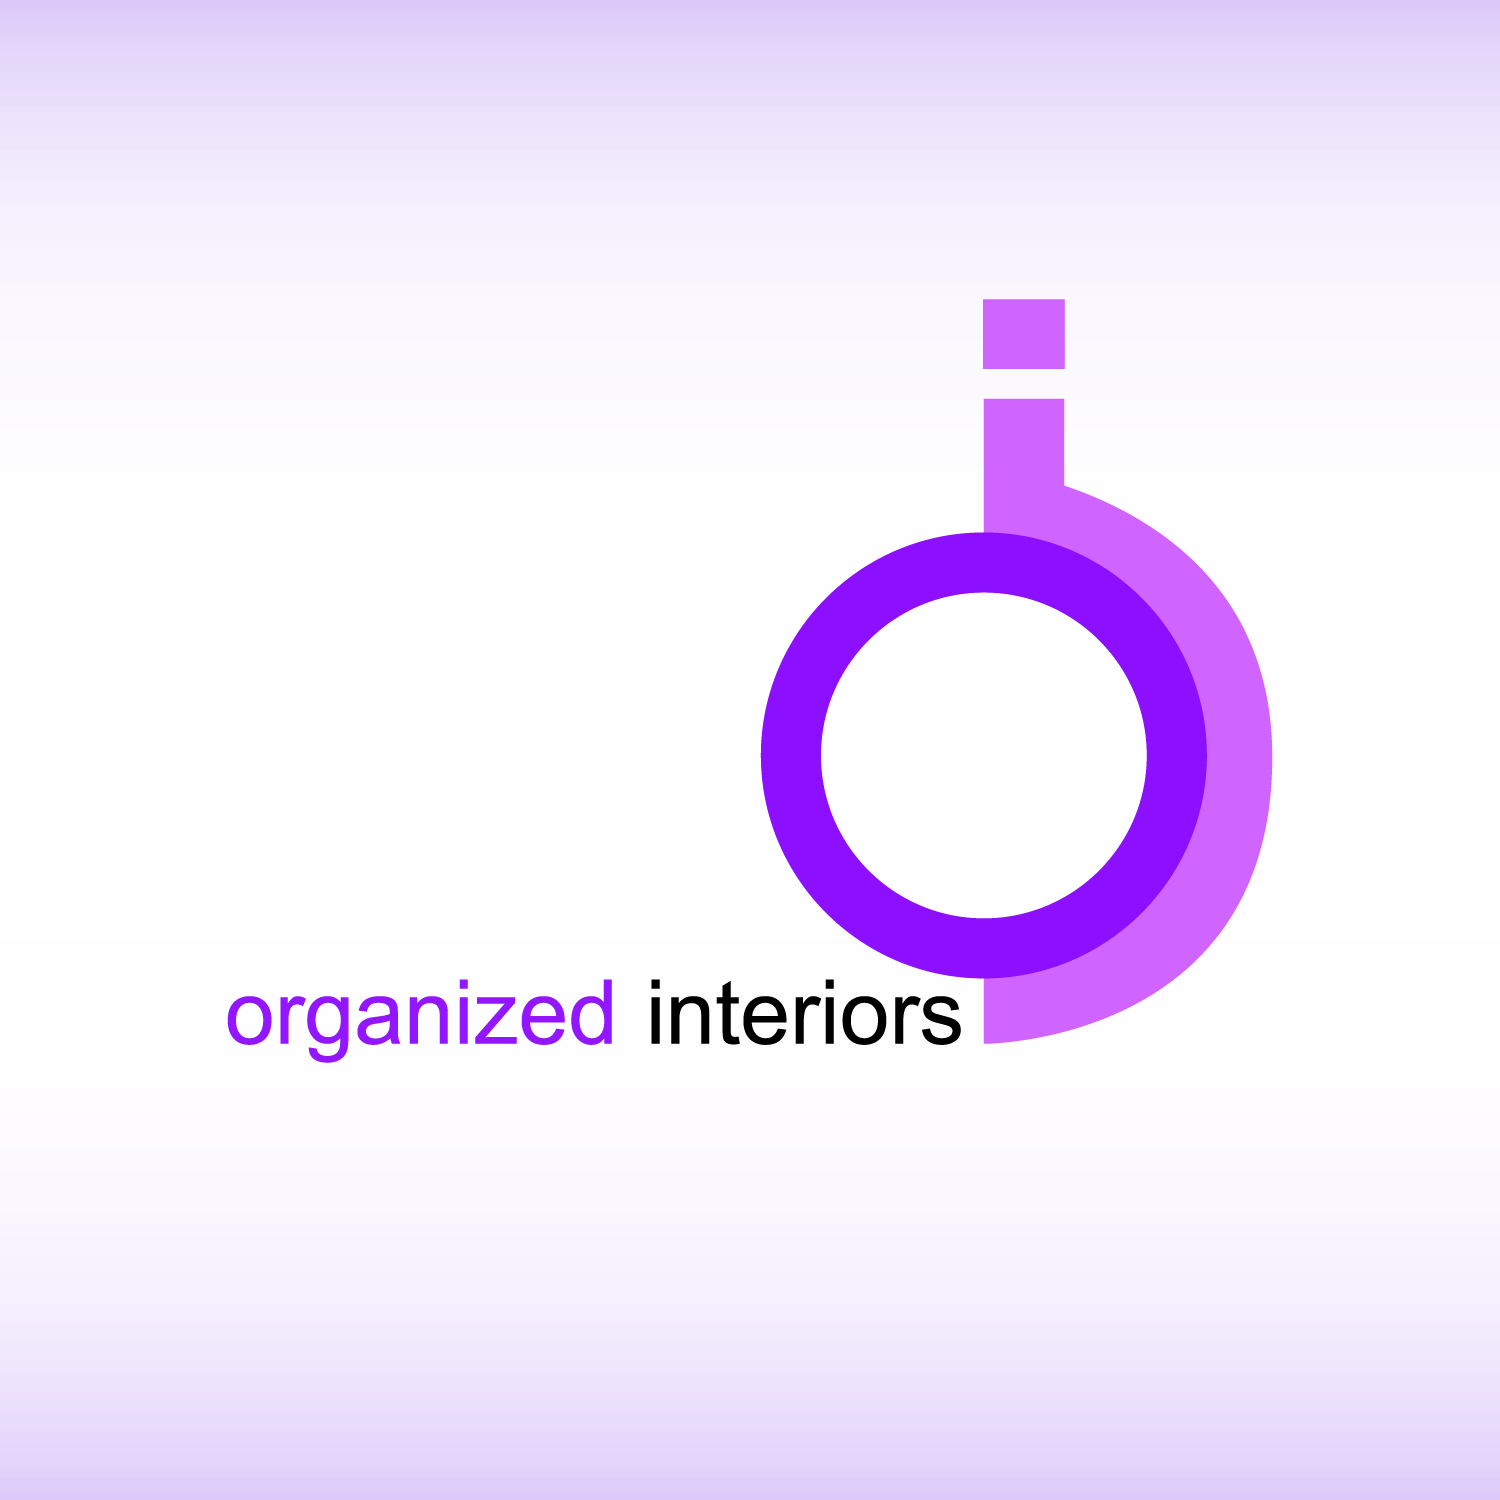 Logo Design by Ricky Frutos - Entry No. 55 in the Logo Design Contest Imaginative Logo Design for Organized Interiors.